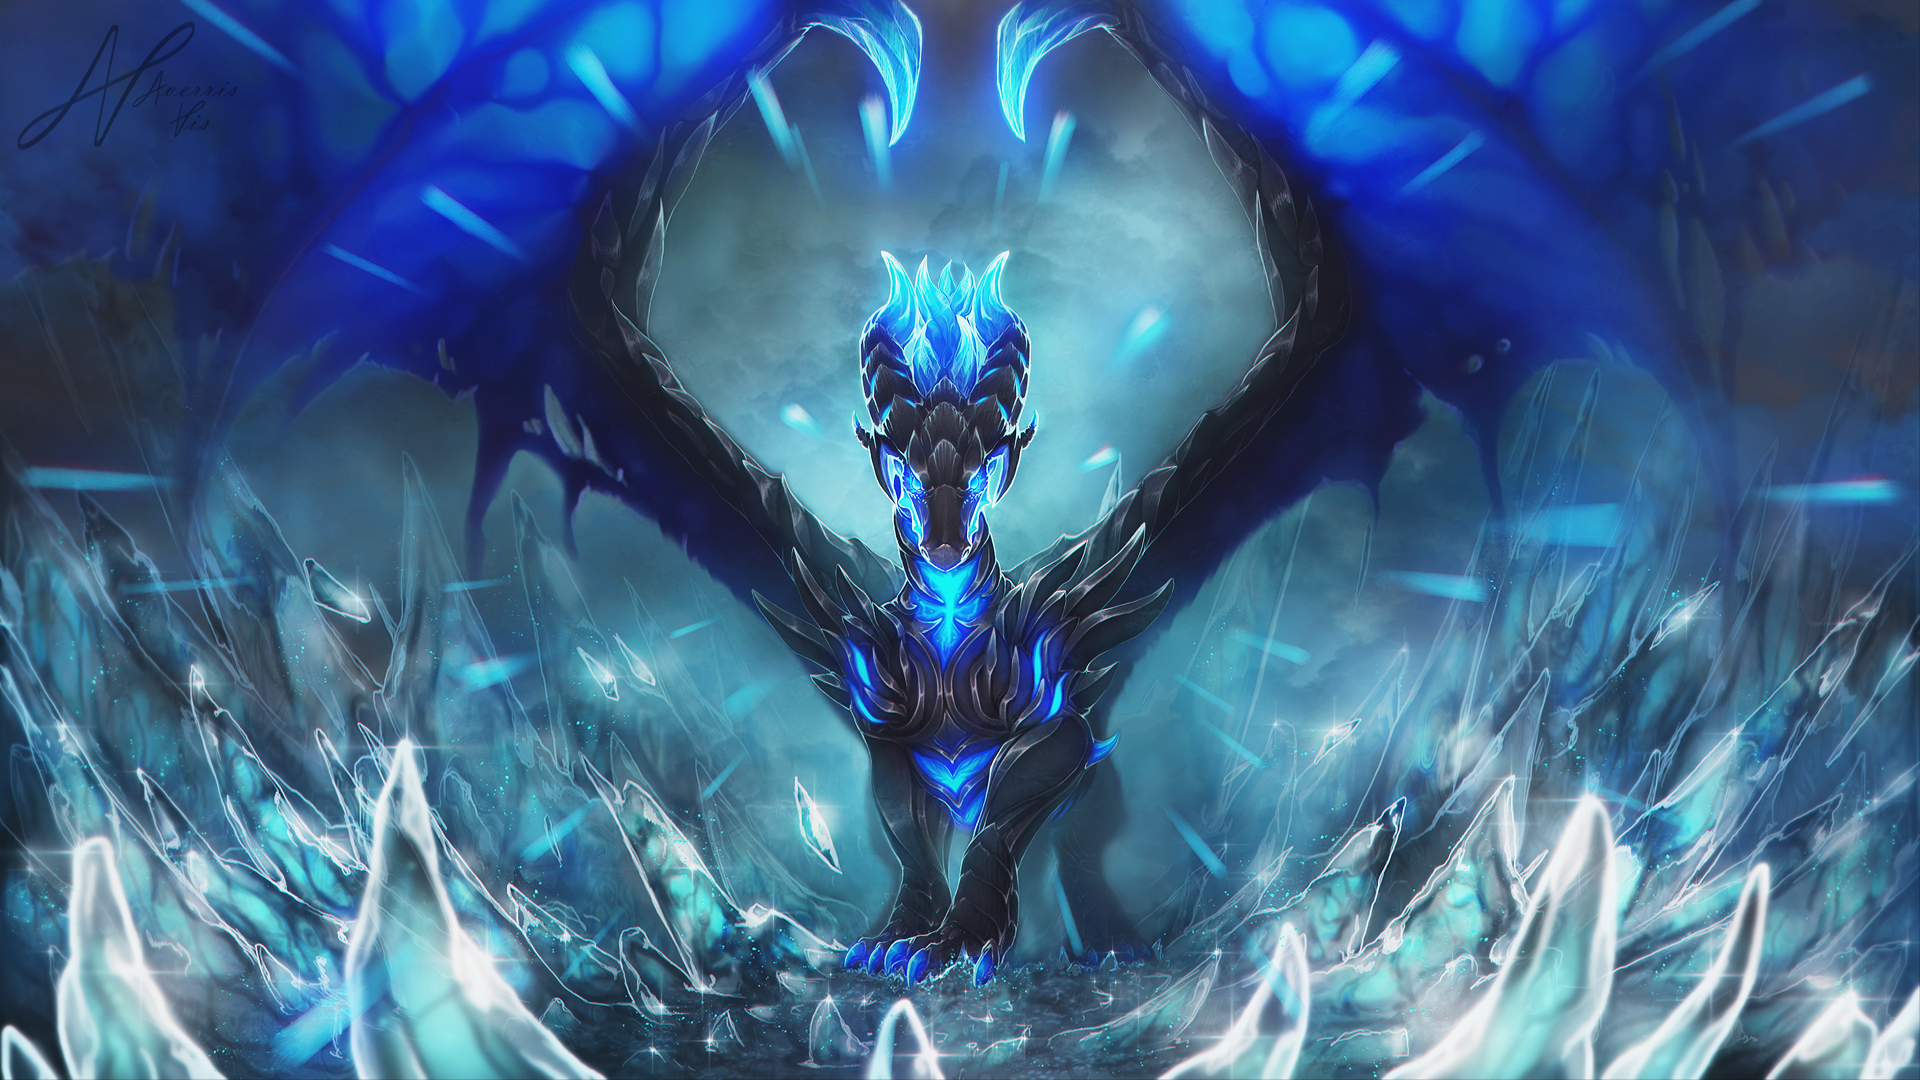 Verad the King of Freeze by AverrisVis on DeviantArt